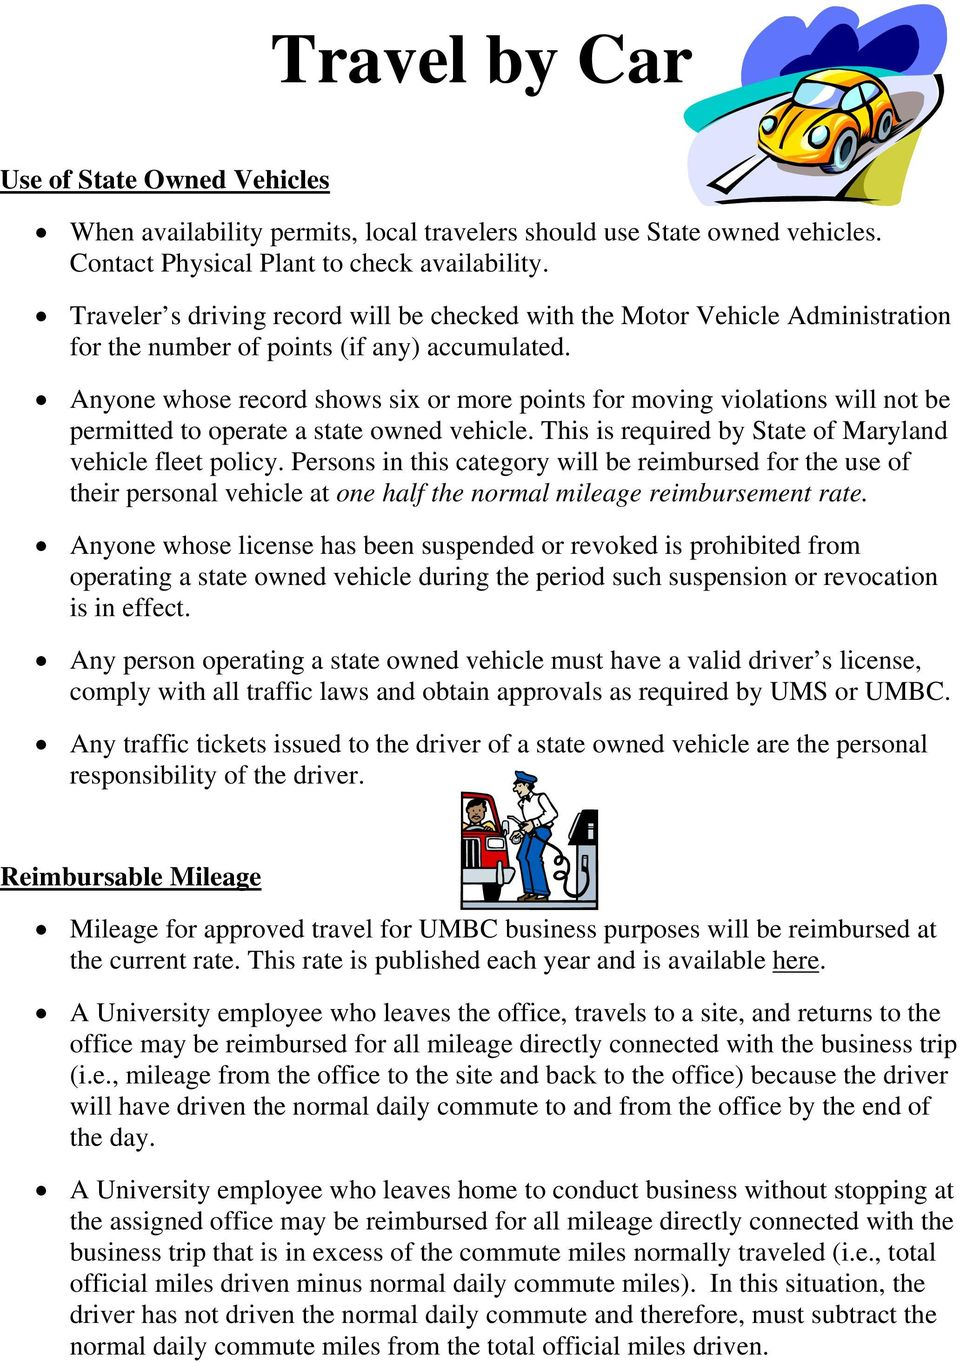 Anyone whose record shows six or more points for moving violations will not be permitted to operate a state owned vehicle. This is required by State of Maryland vehicle fleet policy.